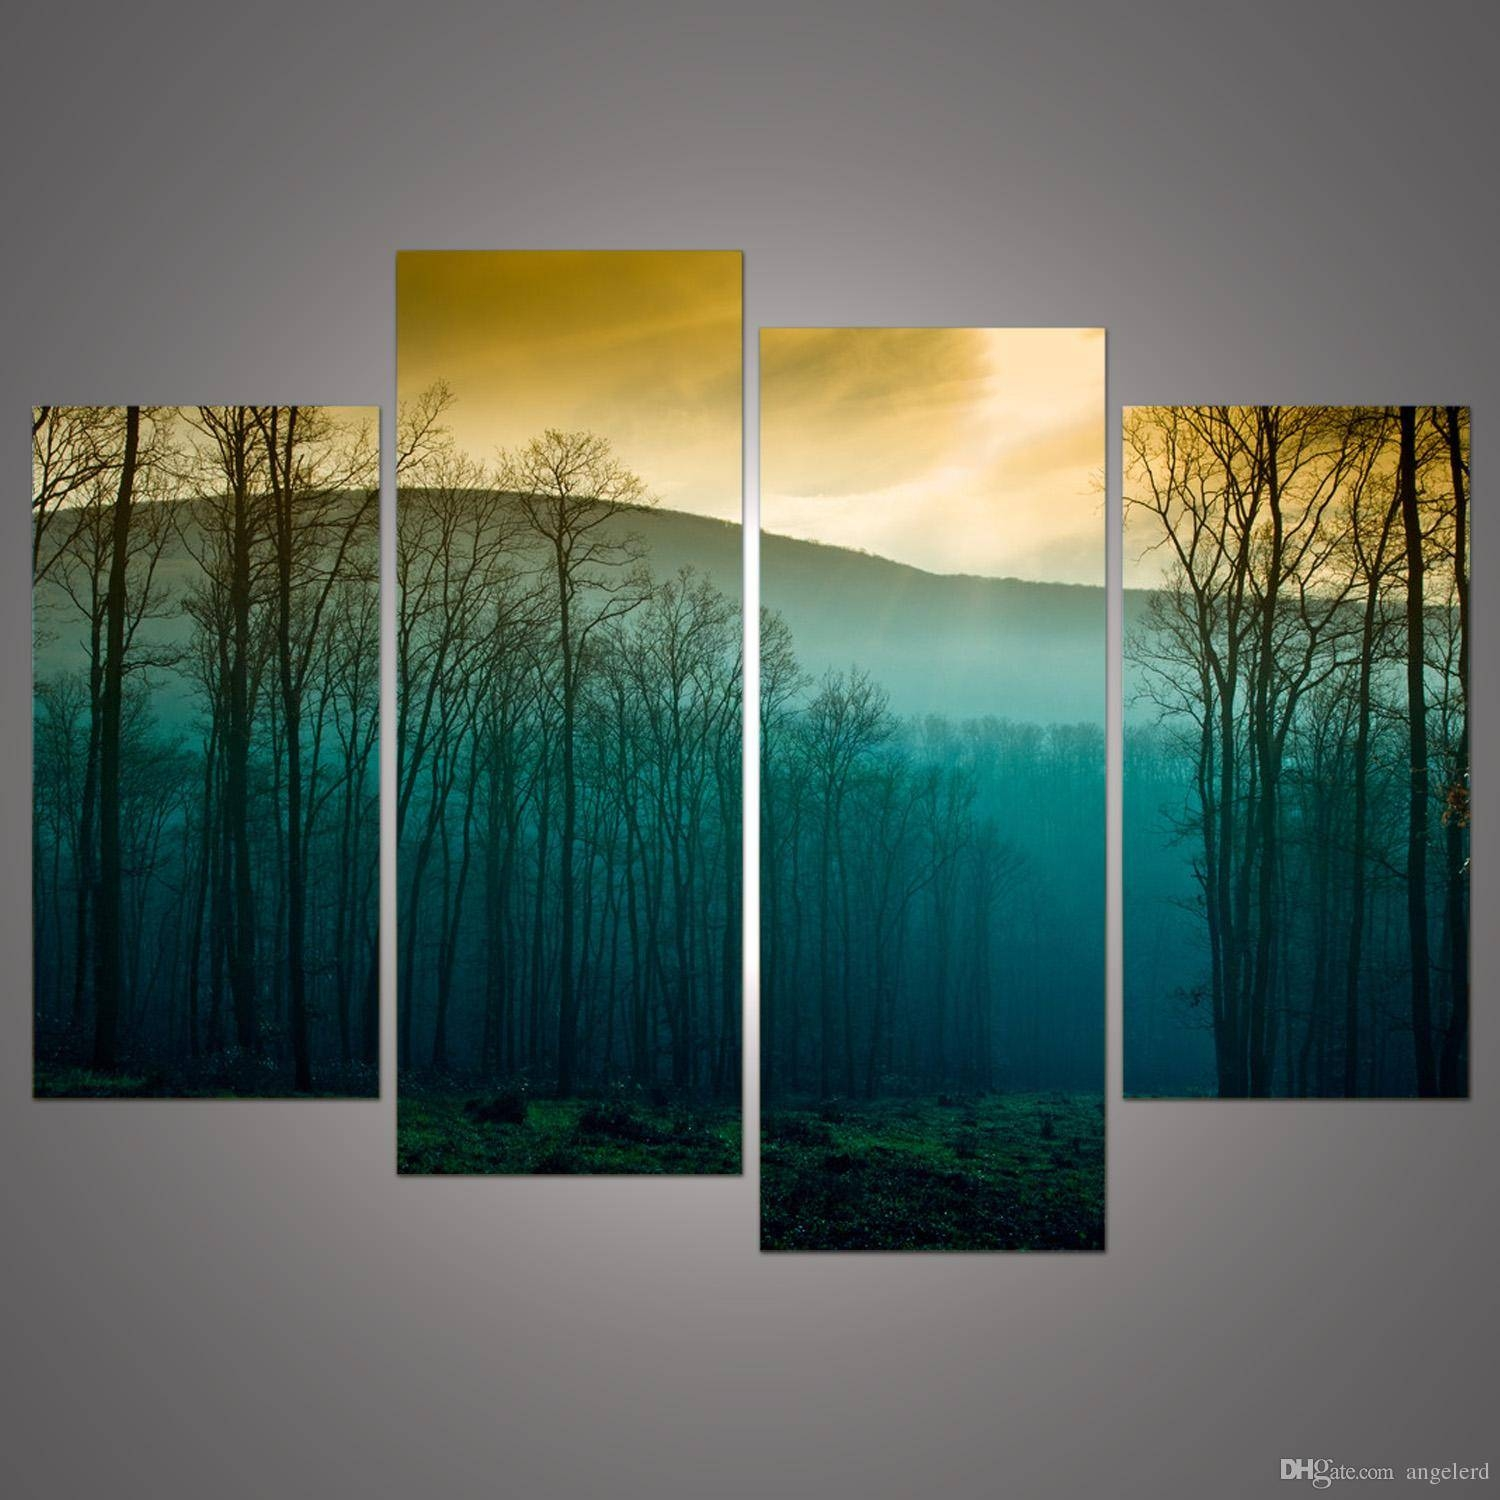 Hot Sale! Modern Abstract Huge Wall Art Painting On Canvas With Regard To Recent Huge Wall Art (View 9 of 20)